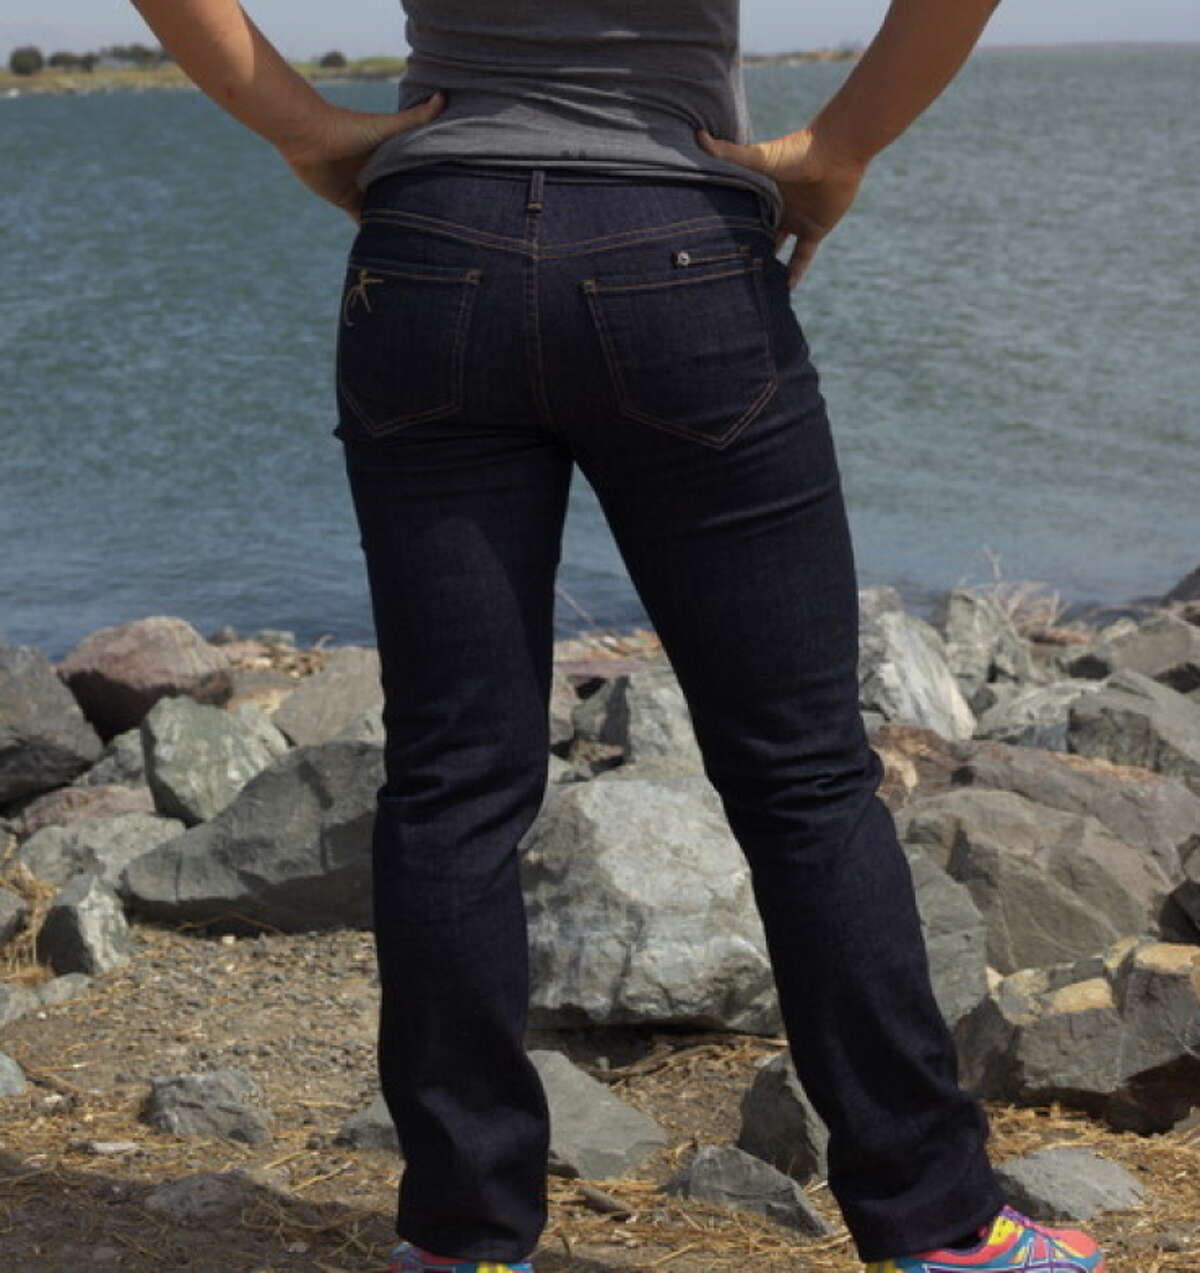 Keirin Cut jeans, made by Oakland track cyclist Beth Newell, are for men and women with muscular thighs and trim waists.